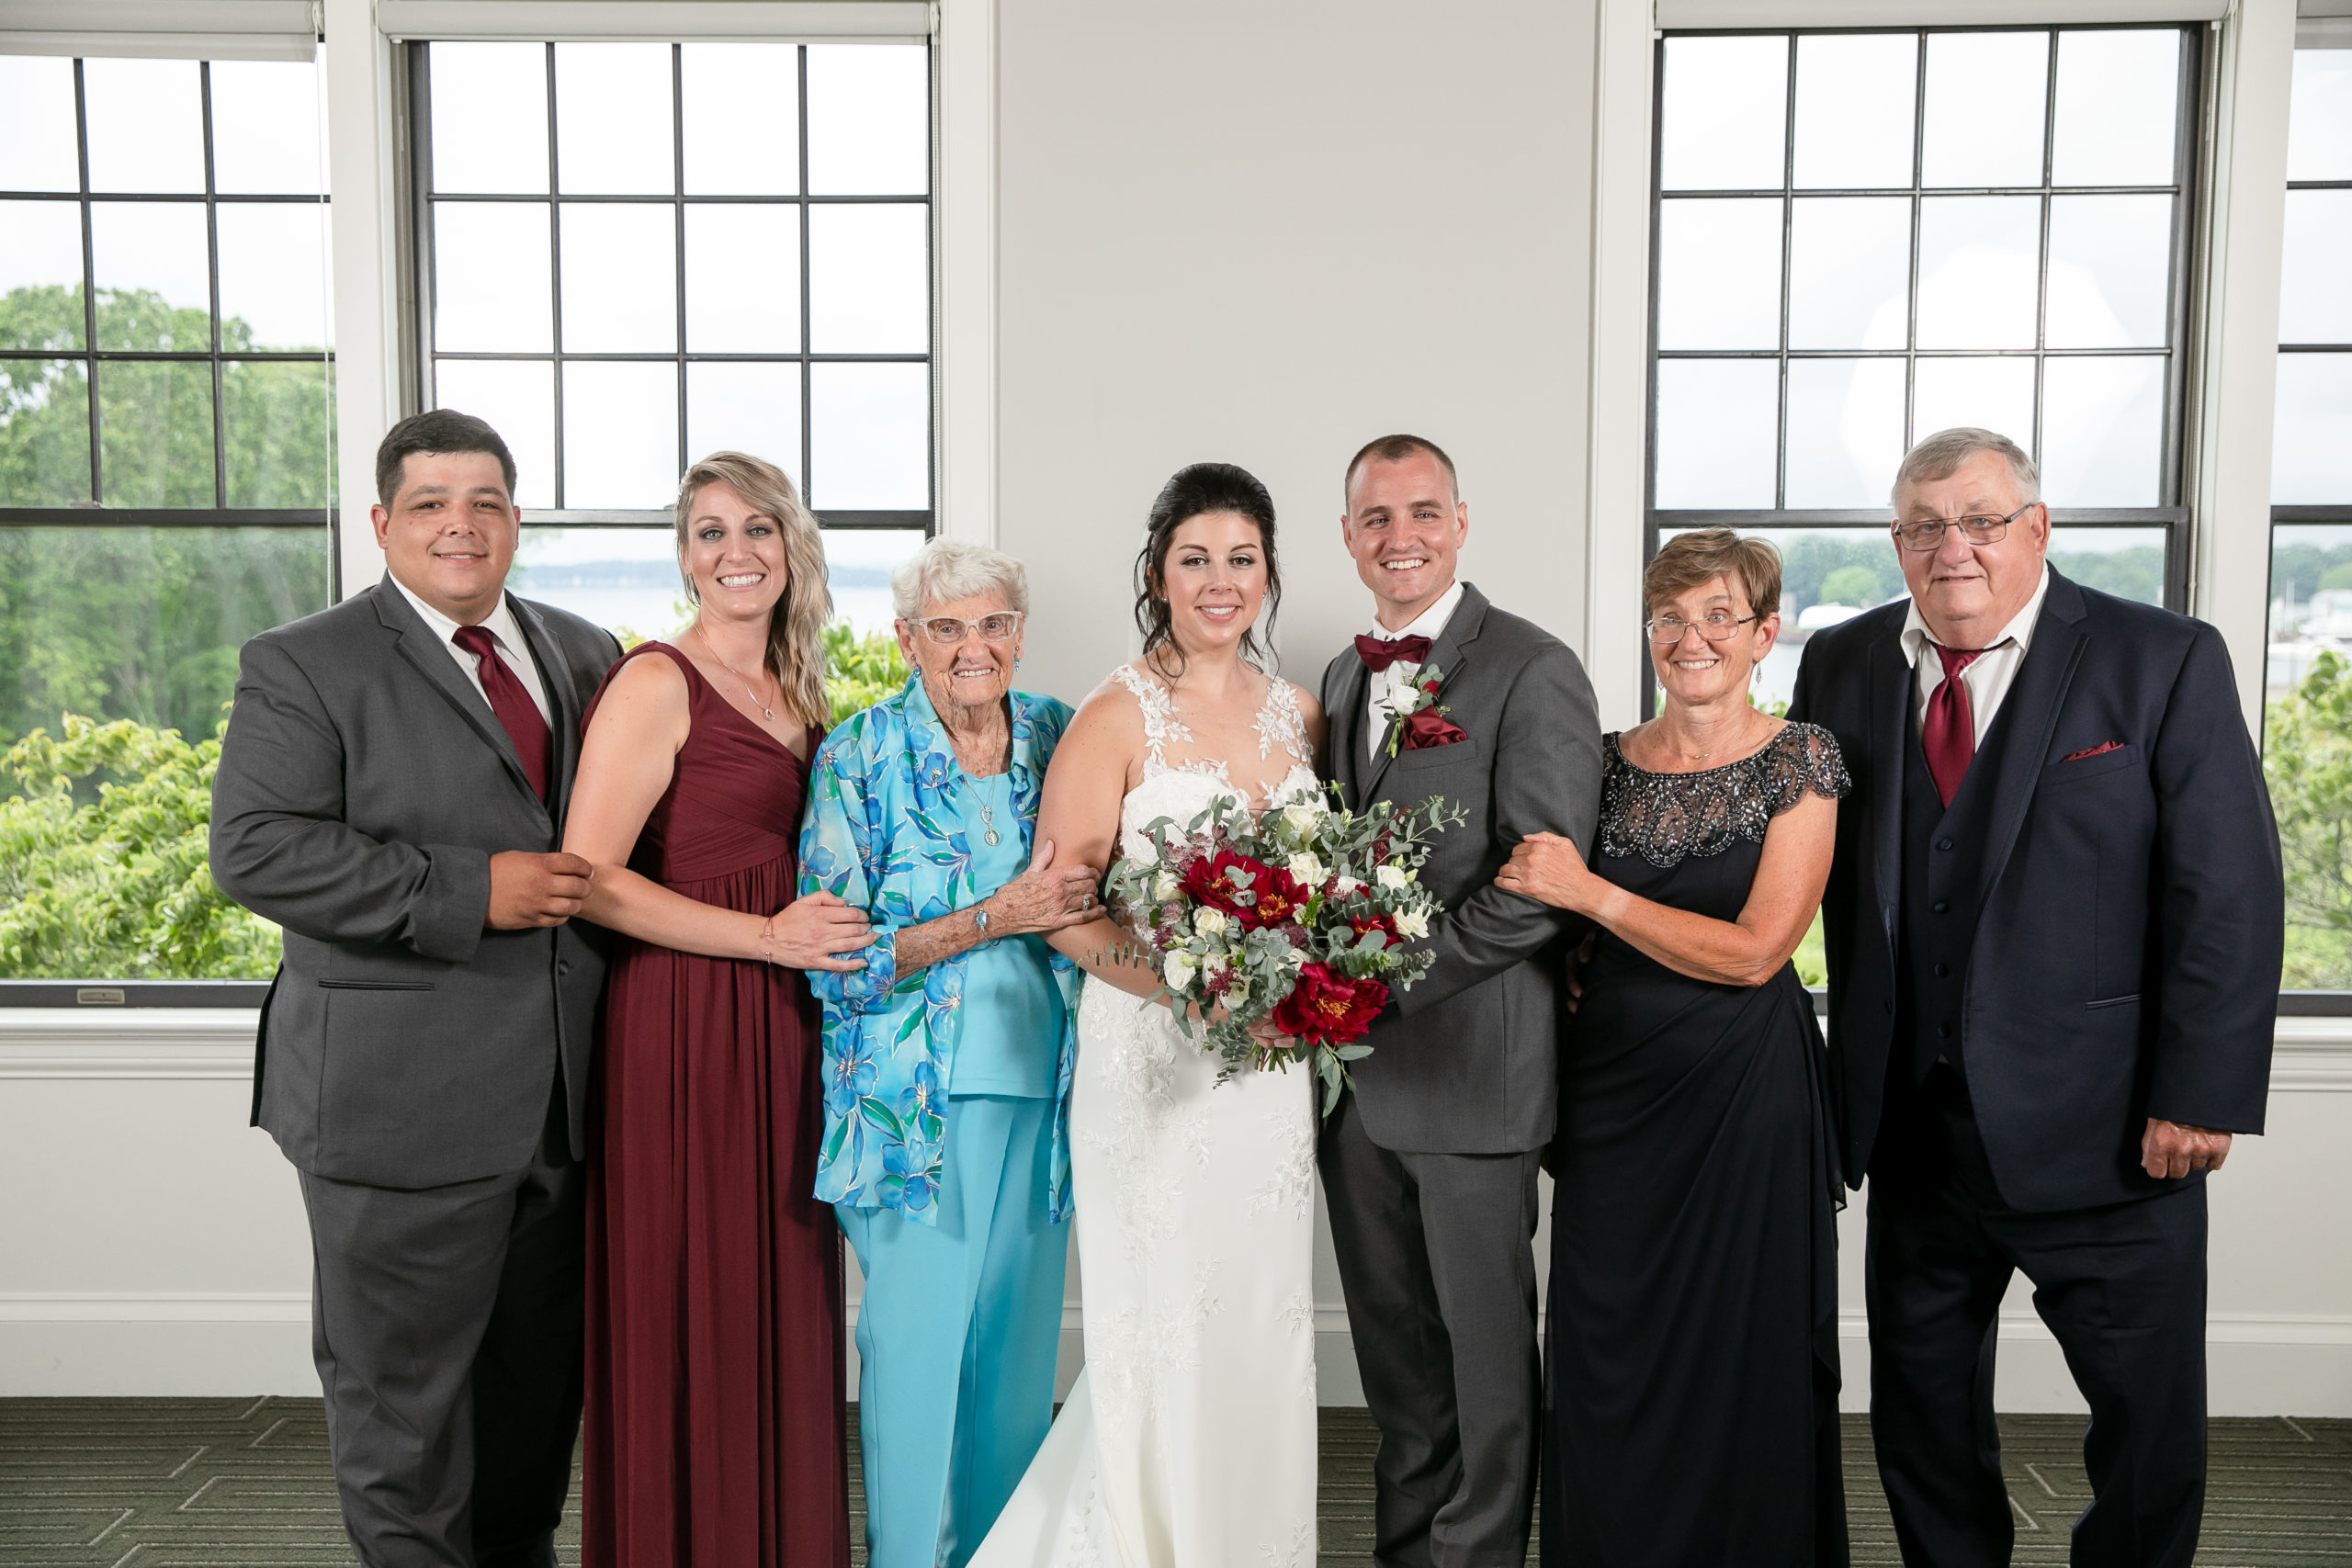 Family Formals, Tracy Jenkins Photography, Harbor Lights, Warwick, Rhode Island, RI, New England, Wedding, Photography